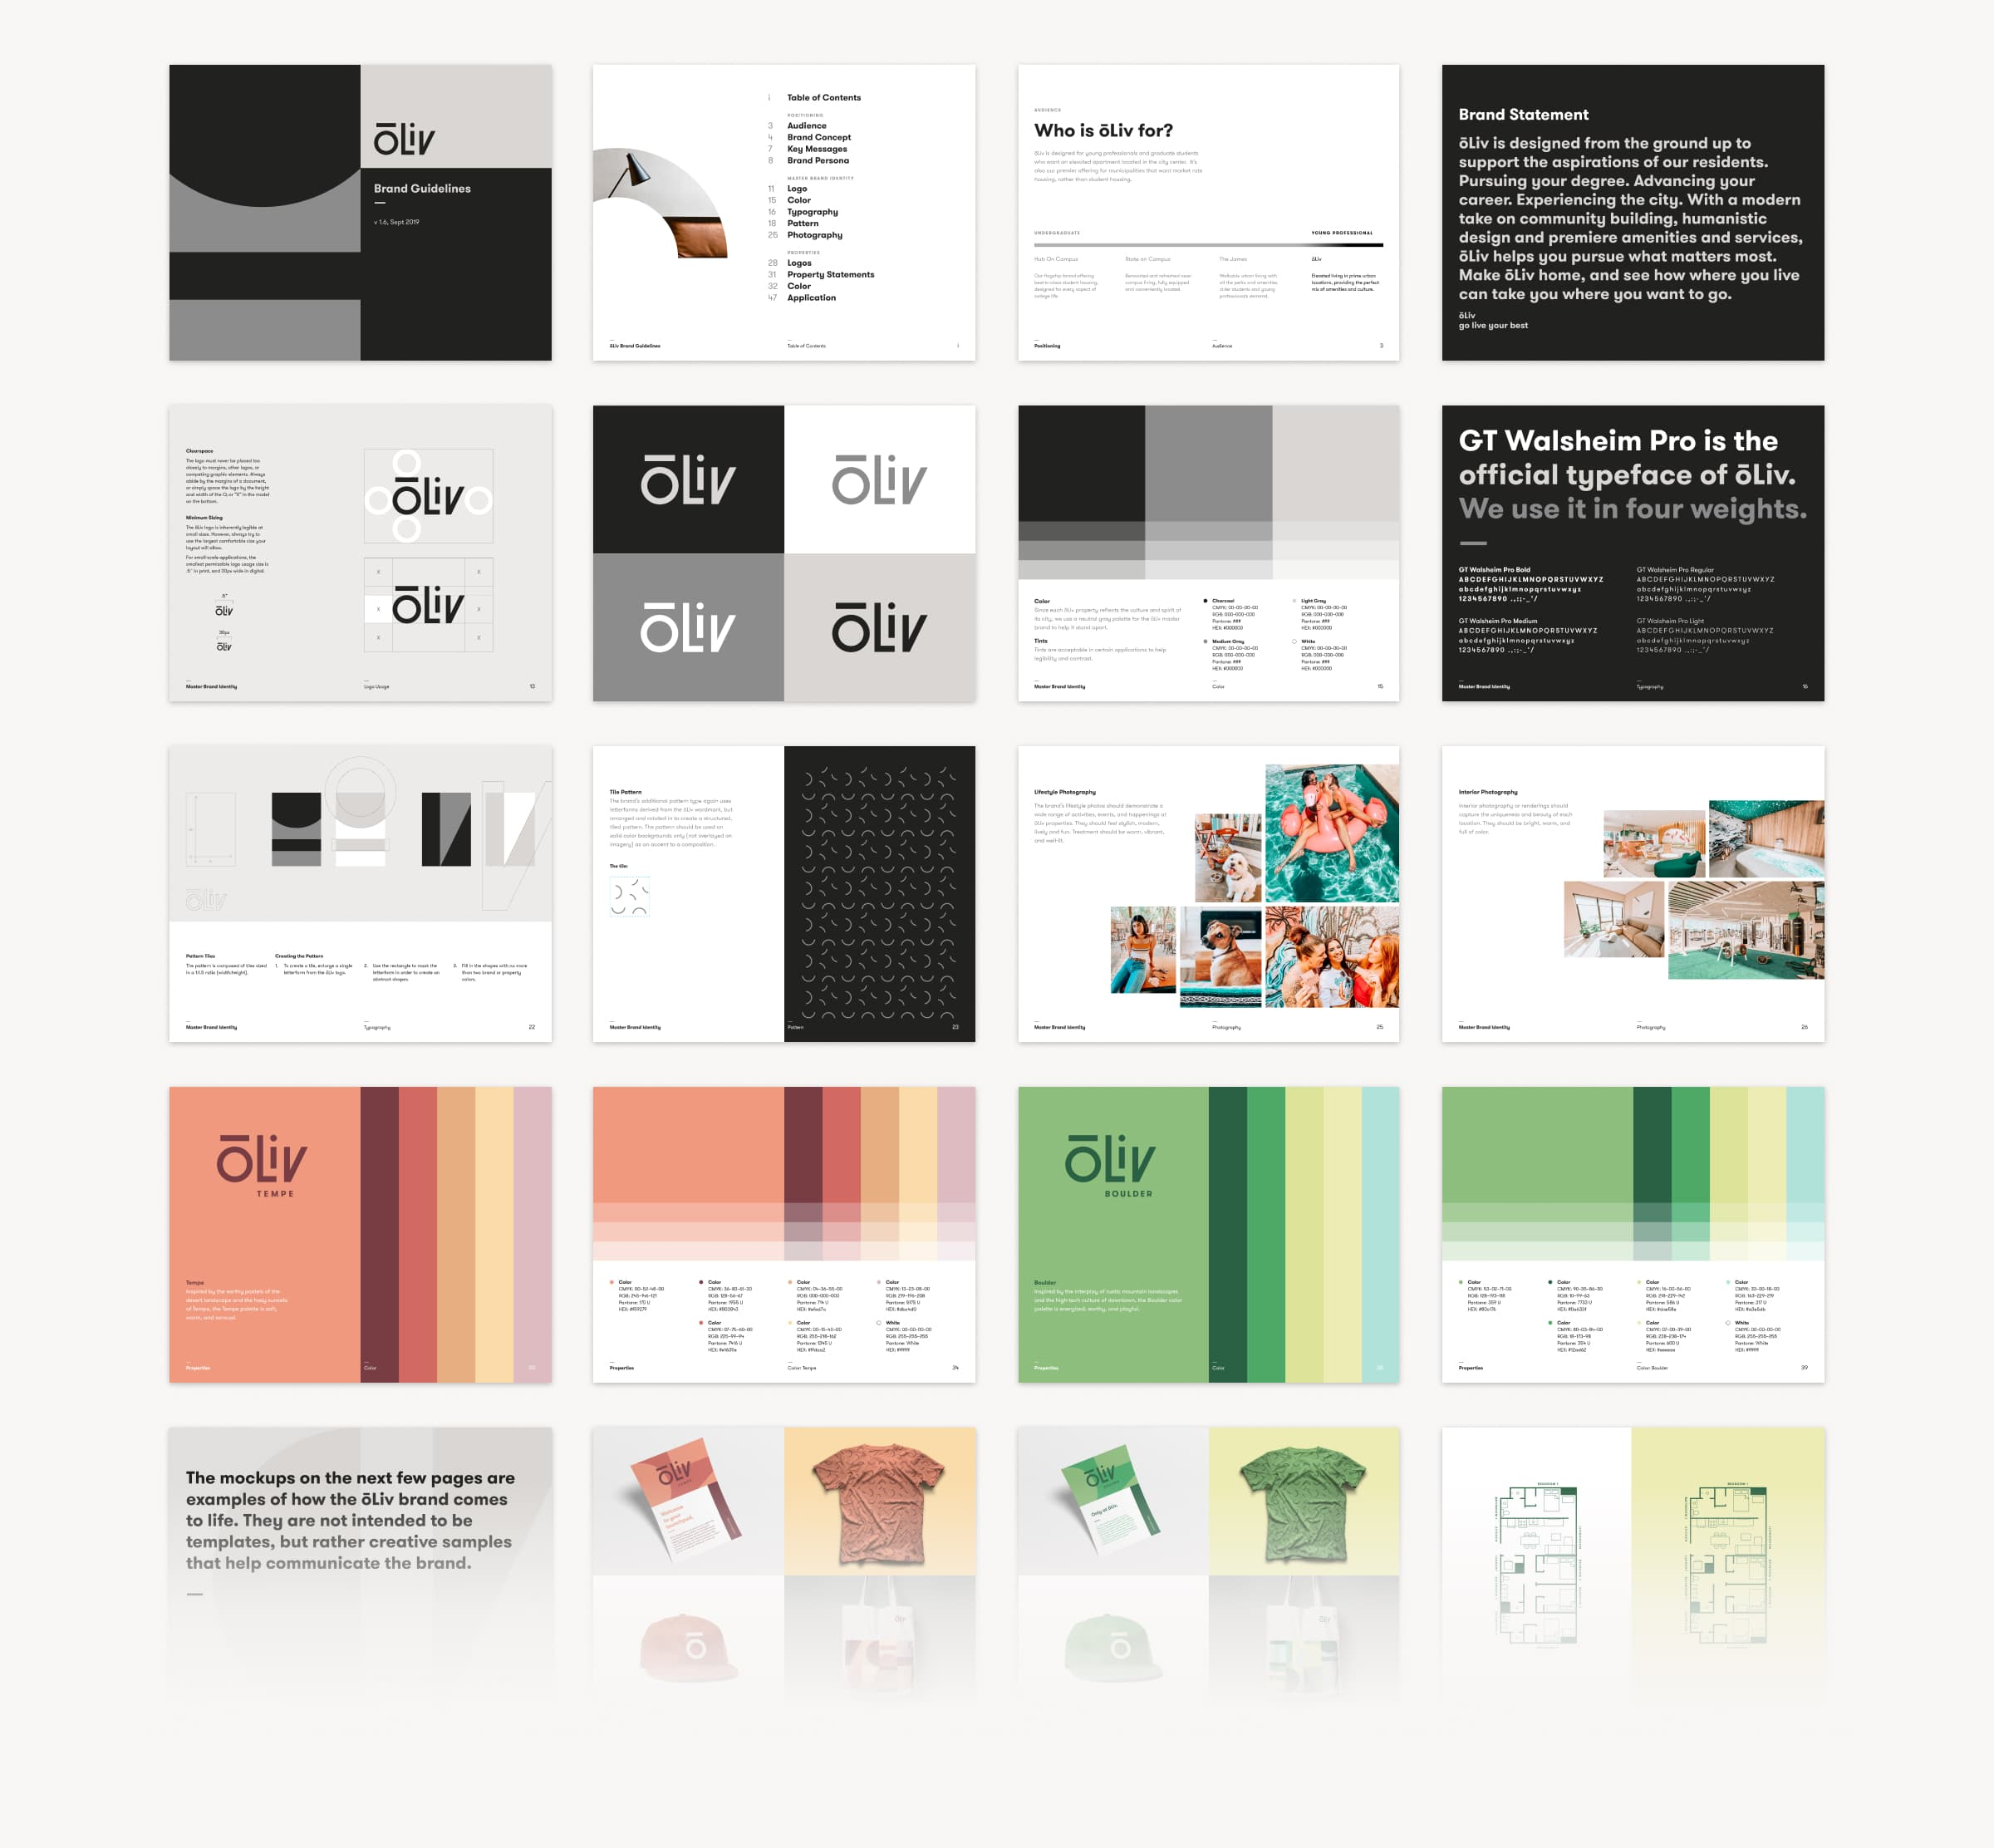 A series of 20 thumbnail images showing key pages from the ōLiv brand style guide.